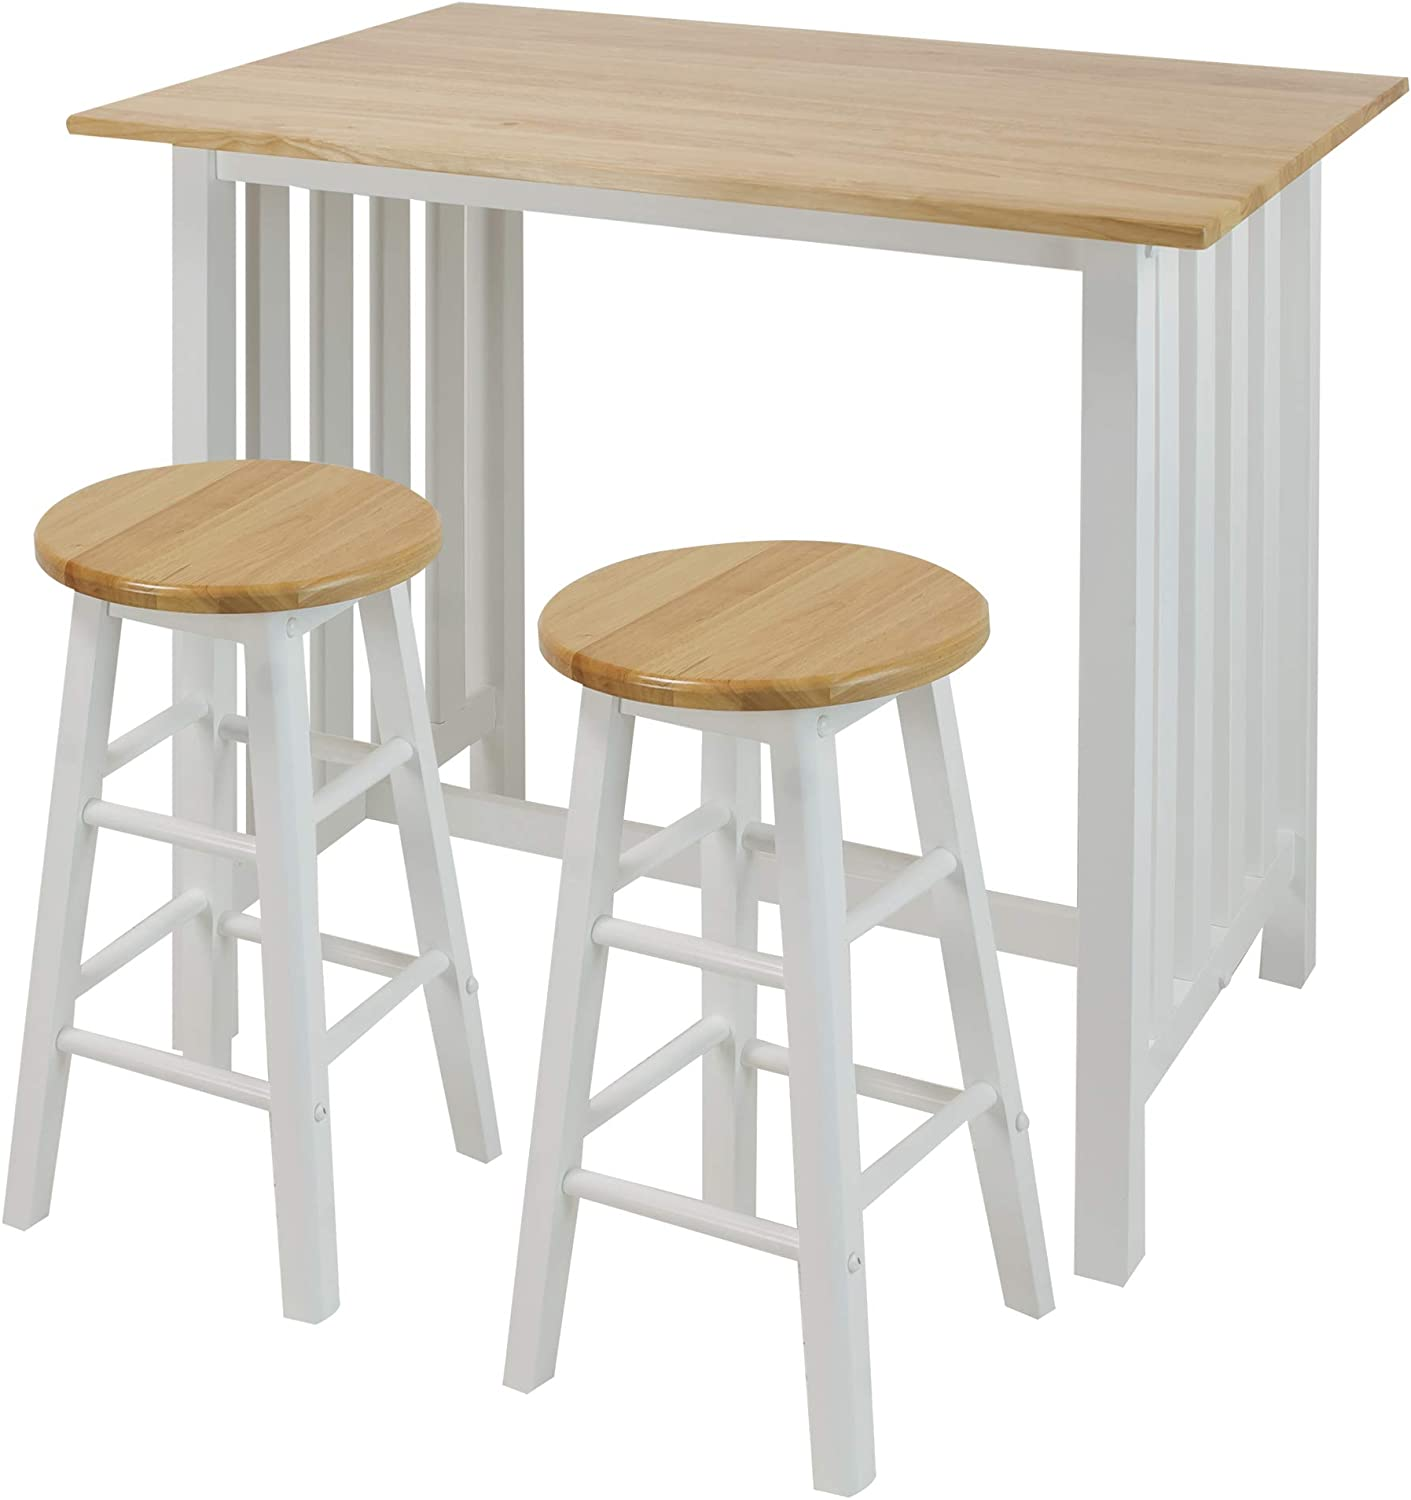 Casual Home 3-Piece Breakfast Set with Solid American Hardwood Top, White: Furniture & Decor